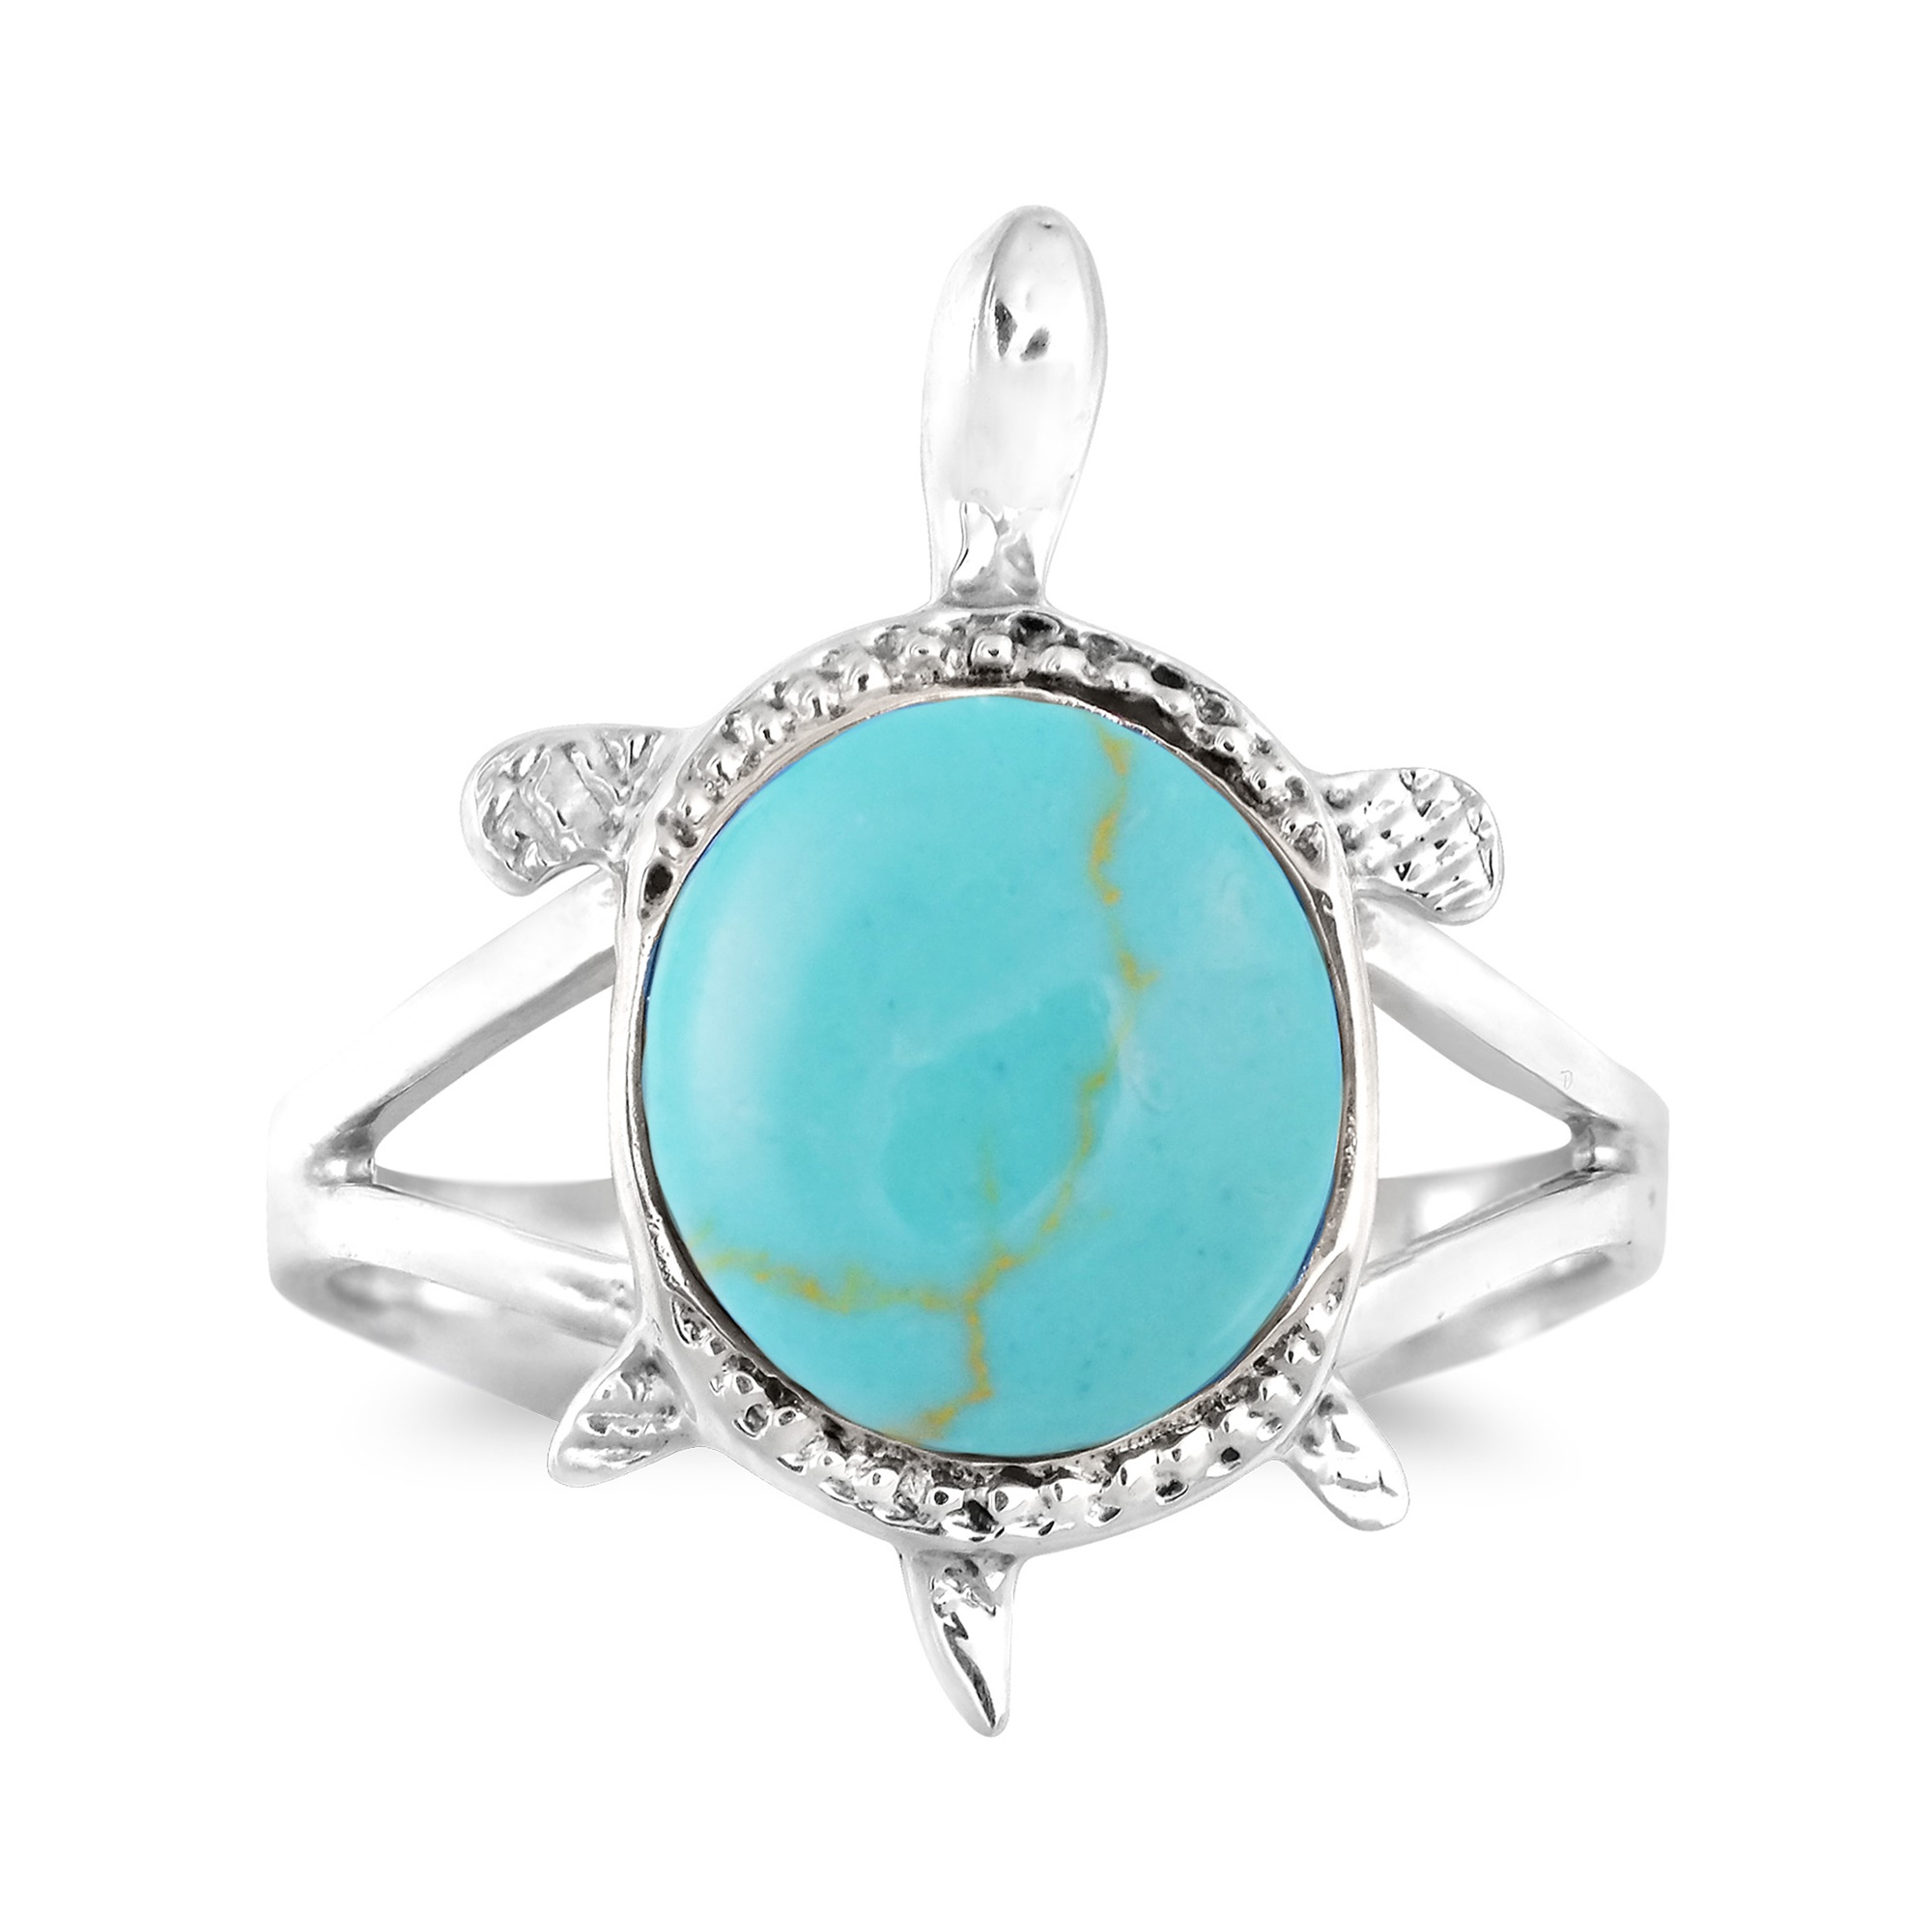 oceans delightfully turquoise stone turtle from sr colored treasured rings detailed with green gemstone vividly gtq made inlay sterling eye wondrous a catching shell is silver gleaming details products ring an